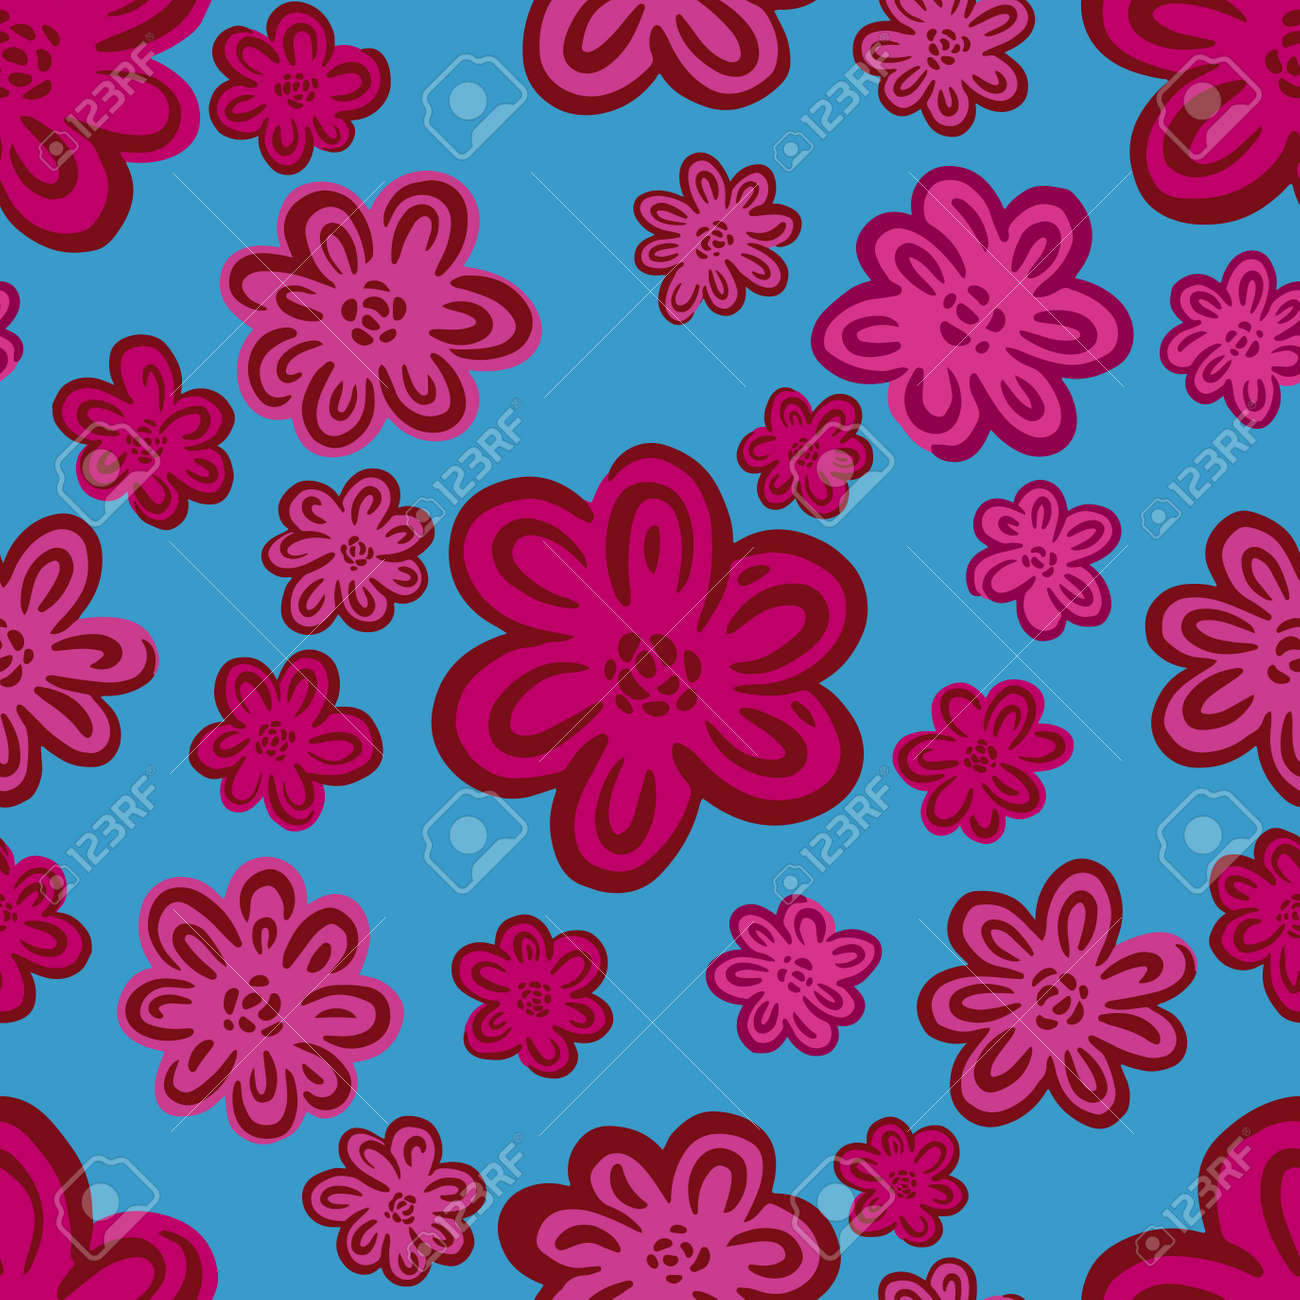 Seamles pattern ditsy small flower.Hand drawn print of textile.Vintage floral design - 171744102